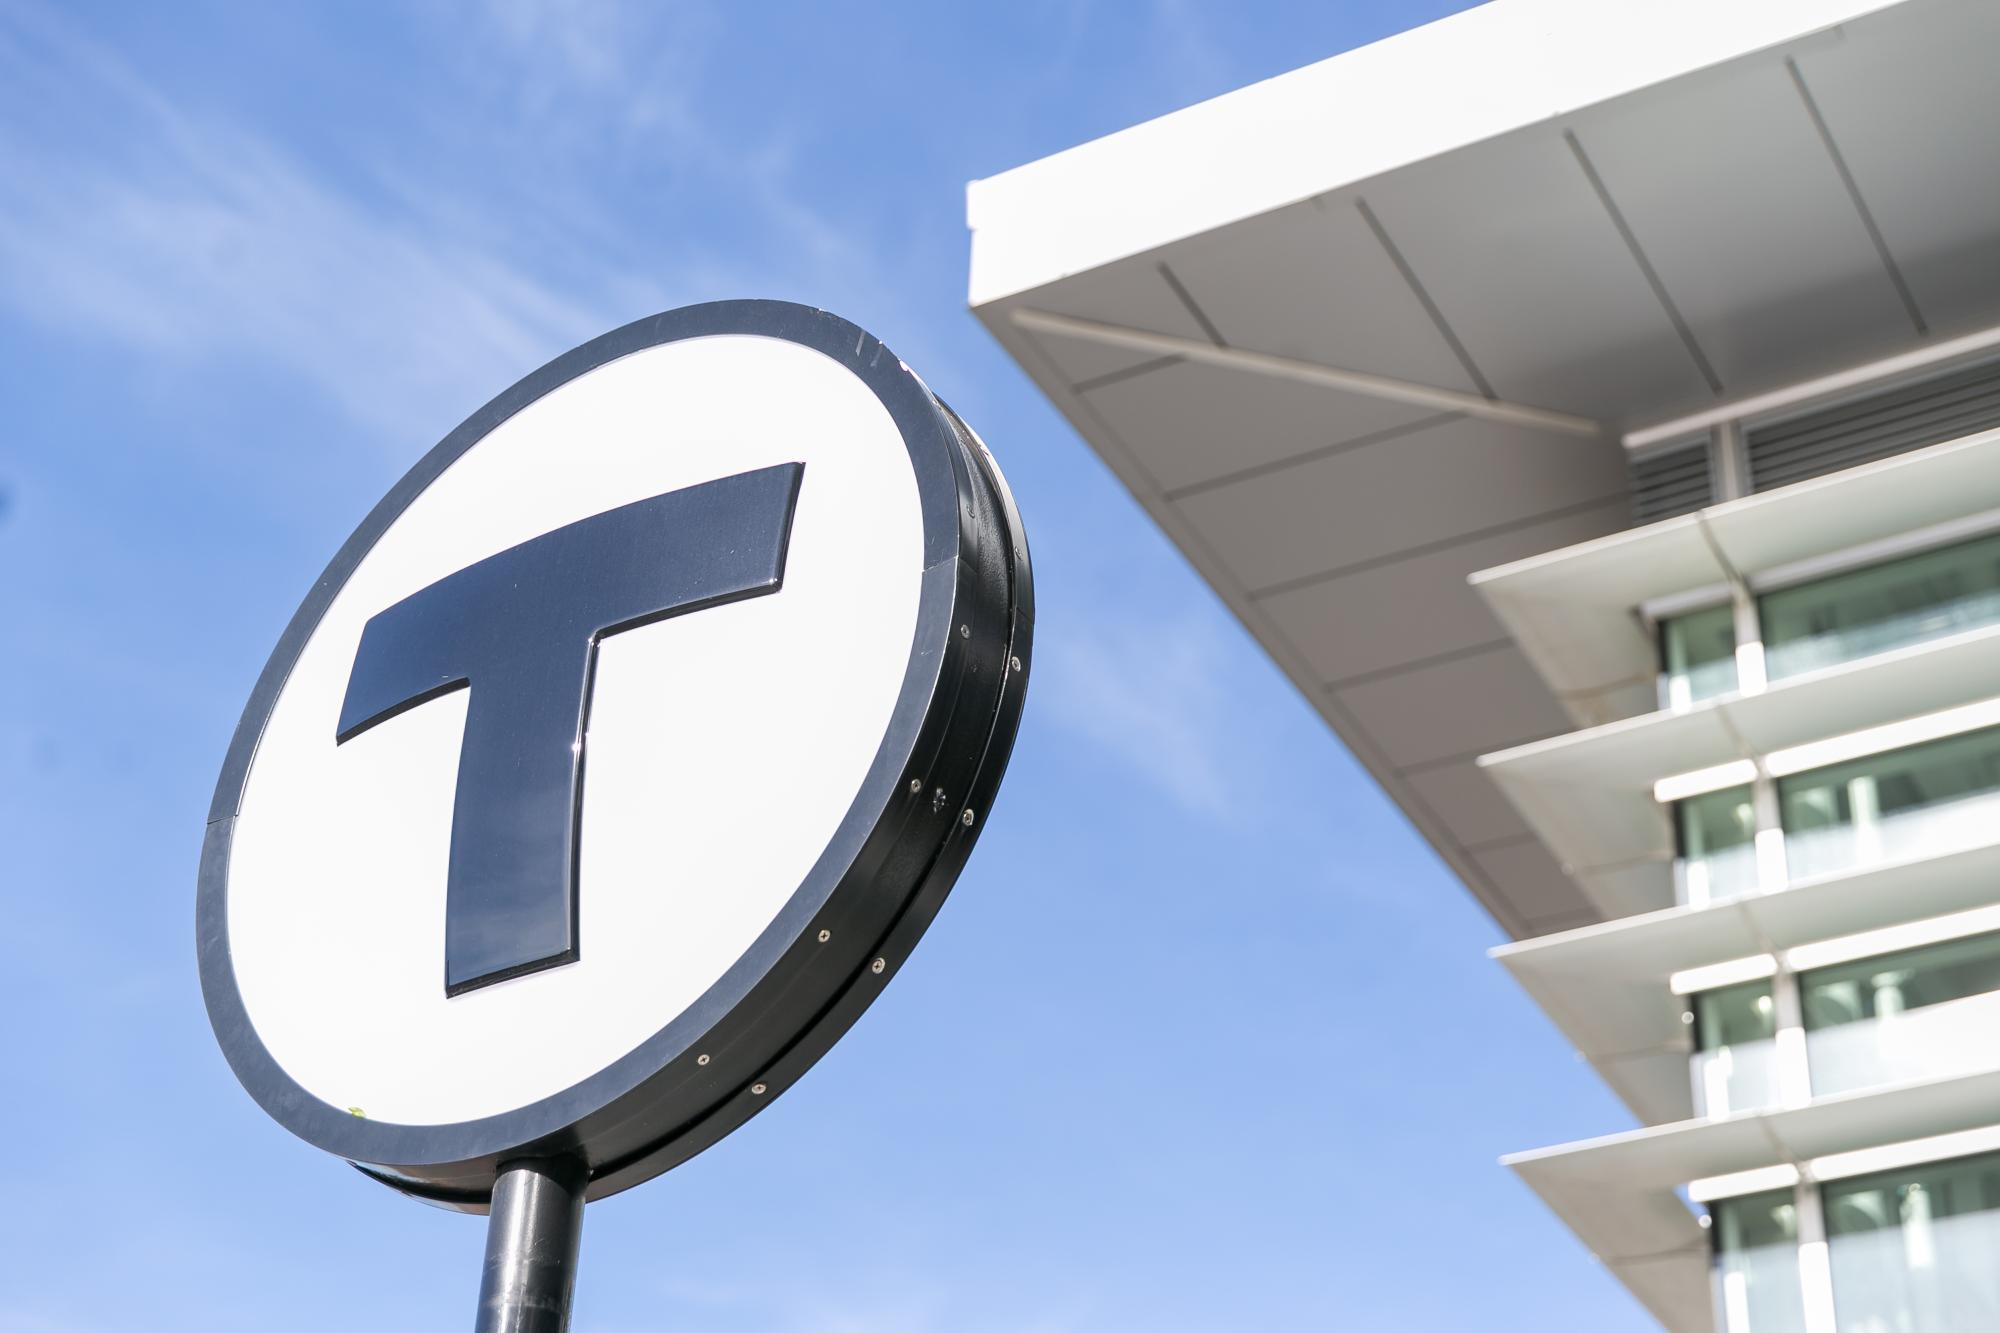 An angled shot of a T logo sign